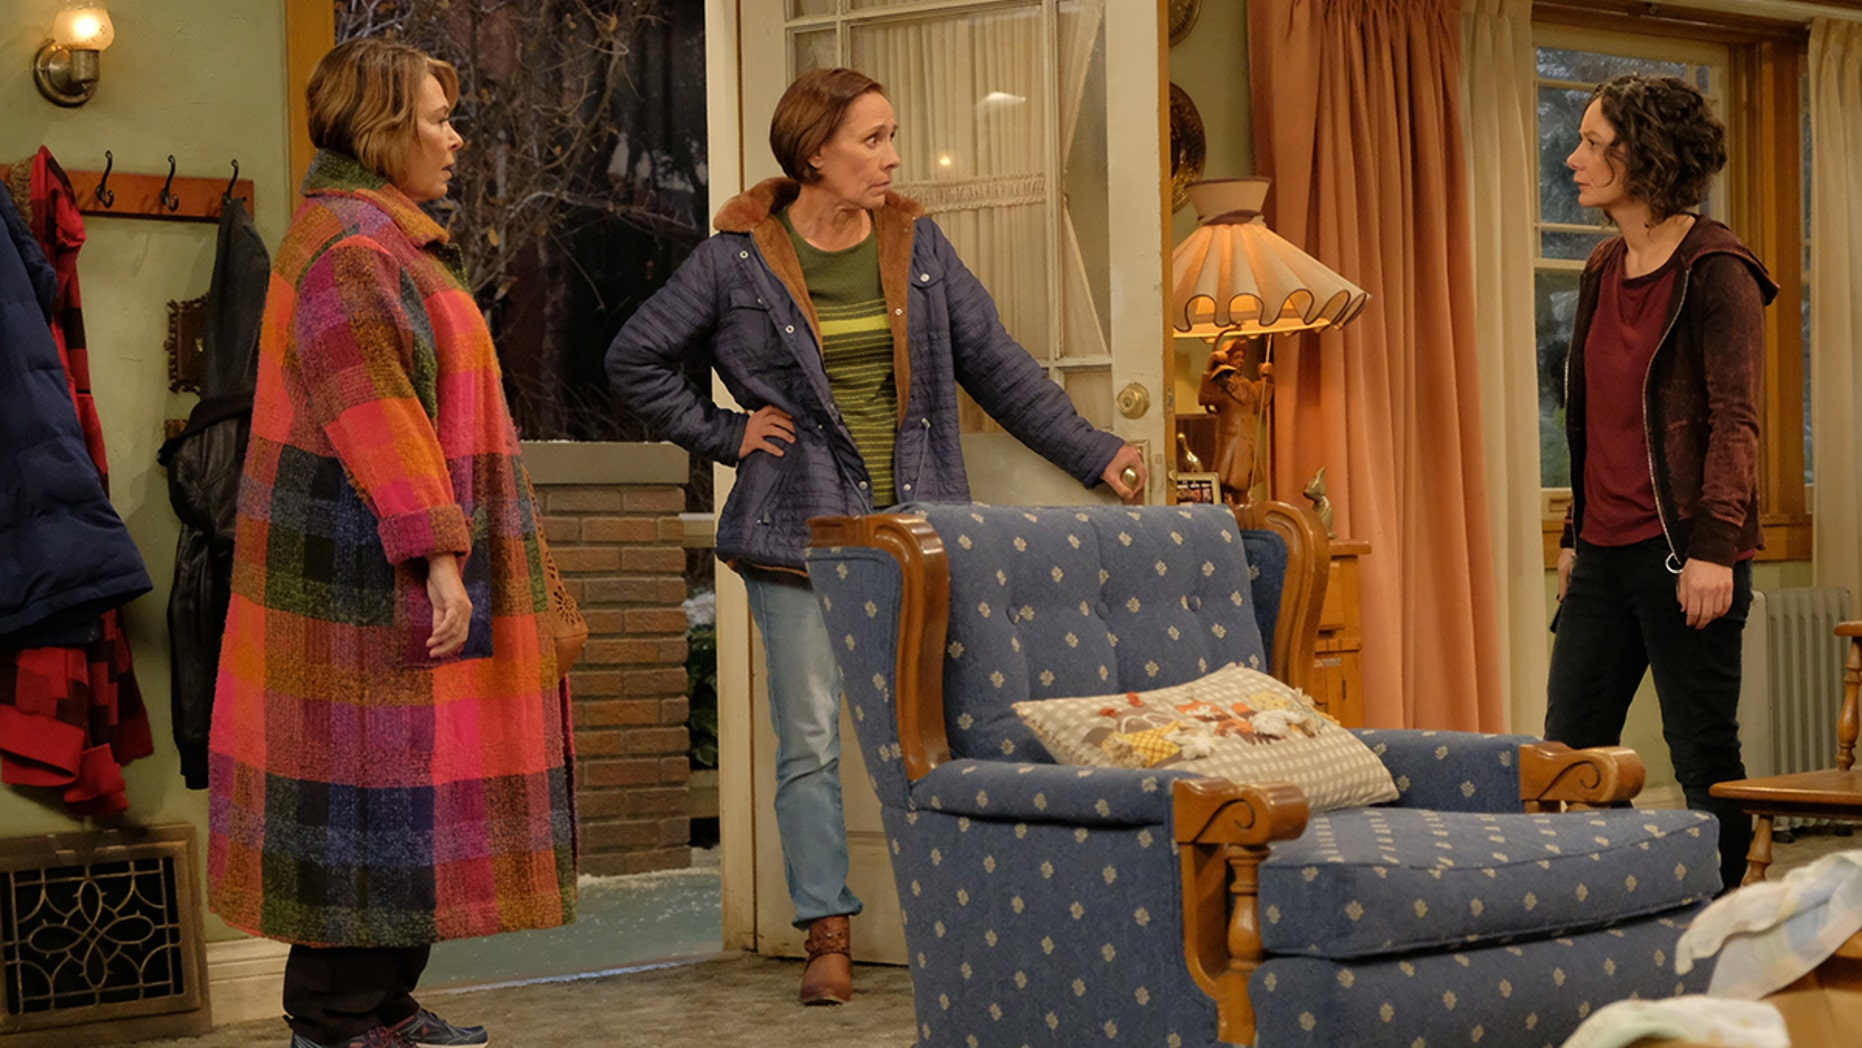 """ROSEANNE - """"Eggs Over, Not Easy"""" - A crucial moment for Becky's surrogacy arrangement forces her and Darlene to critically assess each other's lives. Meanwhile, an animal rescue organization rejects Jackie's application to adopt a puppy; and Roseanne makes a plan to change their mind, on the fourth episode of the revival of """"Roseanne,"""" TUESDAY, APRIL 10 (8:00-8:30 p.m. EDT), on The ABC Television Network. (ABC/Adam Rose)ROSEANNE BARR, LAURIE METCALF, SARA GILBERT"""